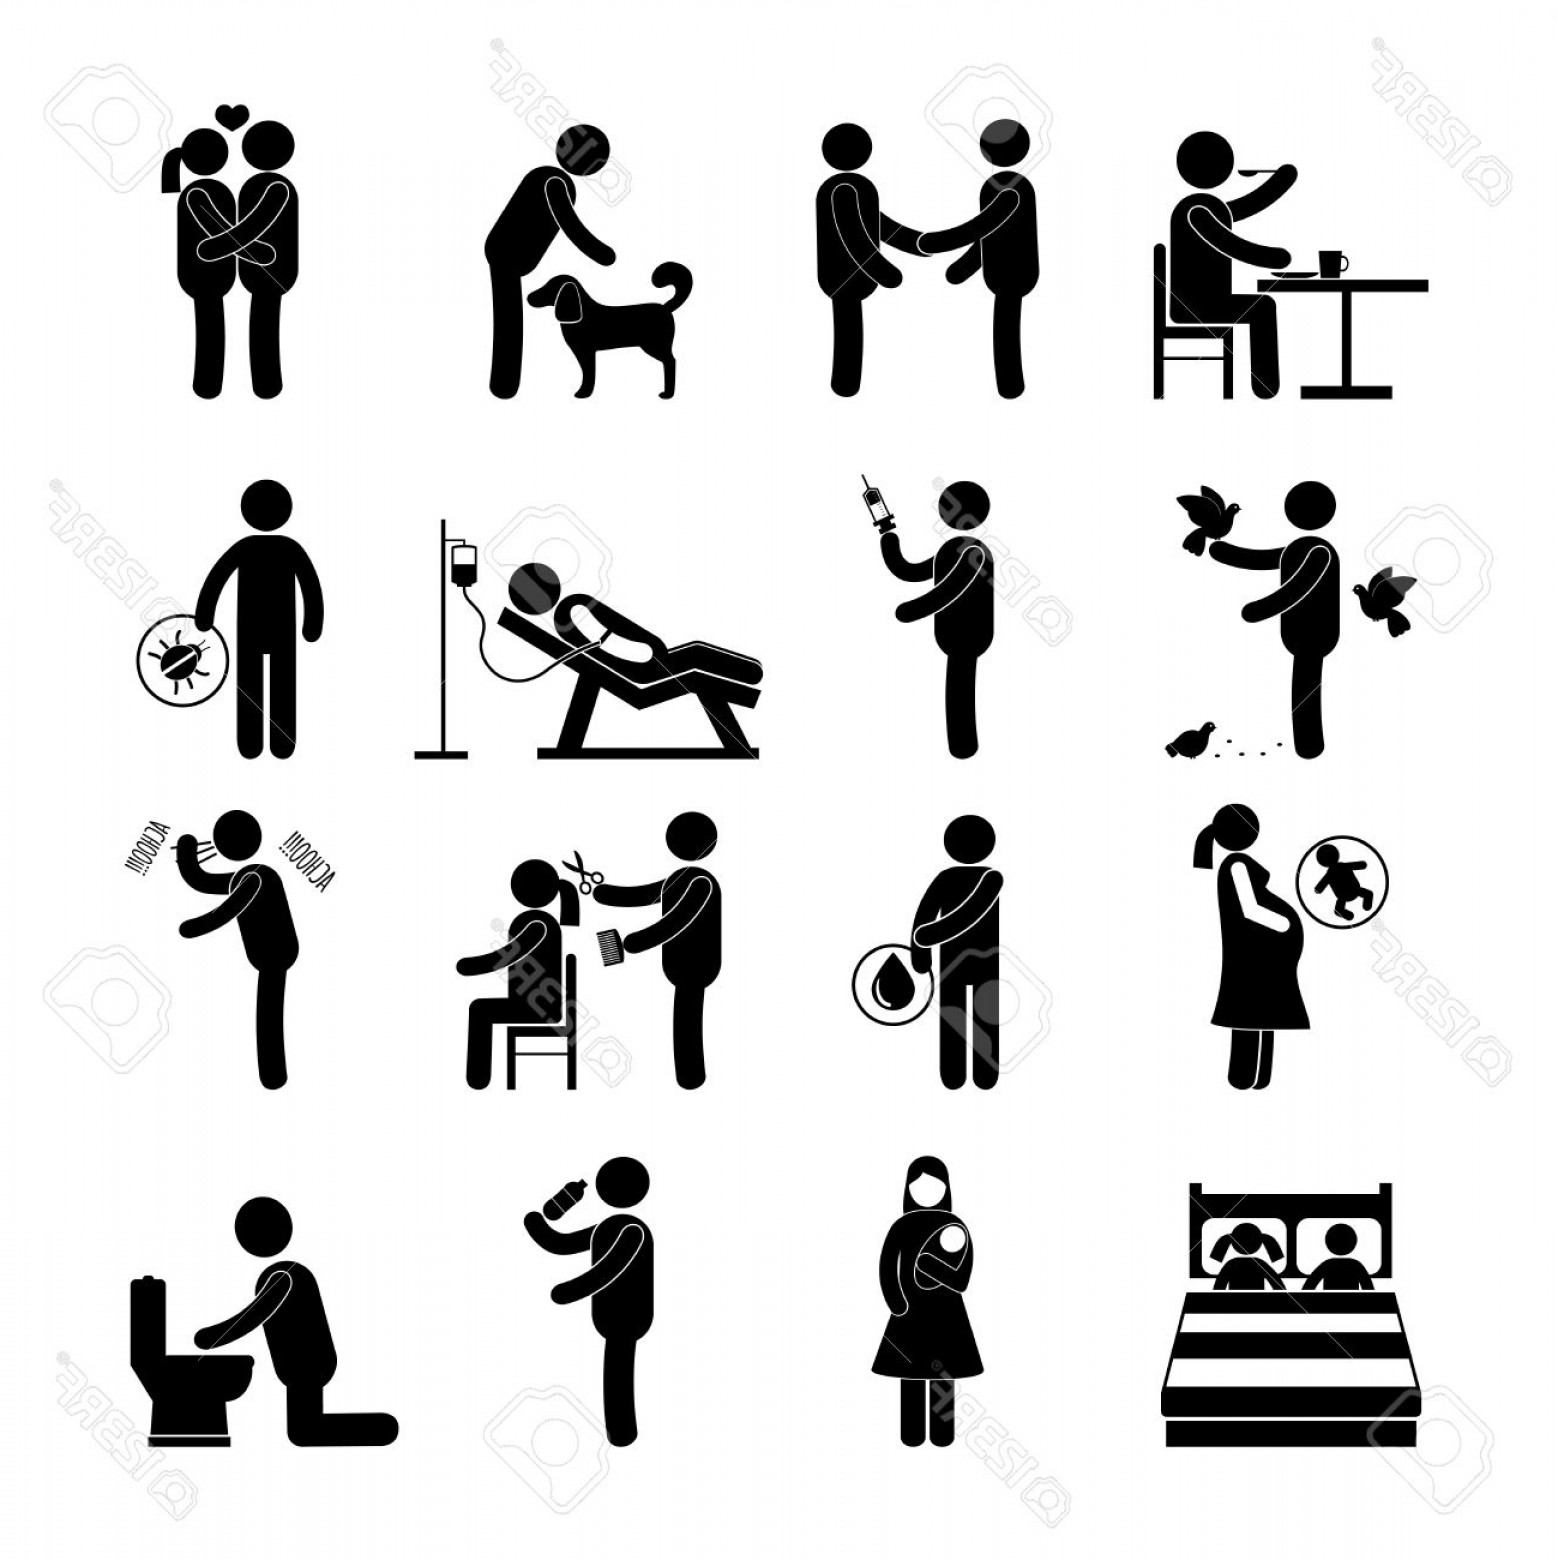 Diseases Spread By Vectors: Photostock Vector Diseases And Infection Transmission Way Set With Pictogram People Isolated Vector Illustration